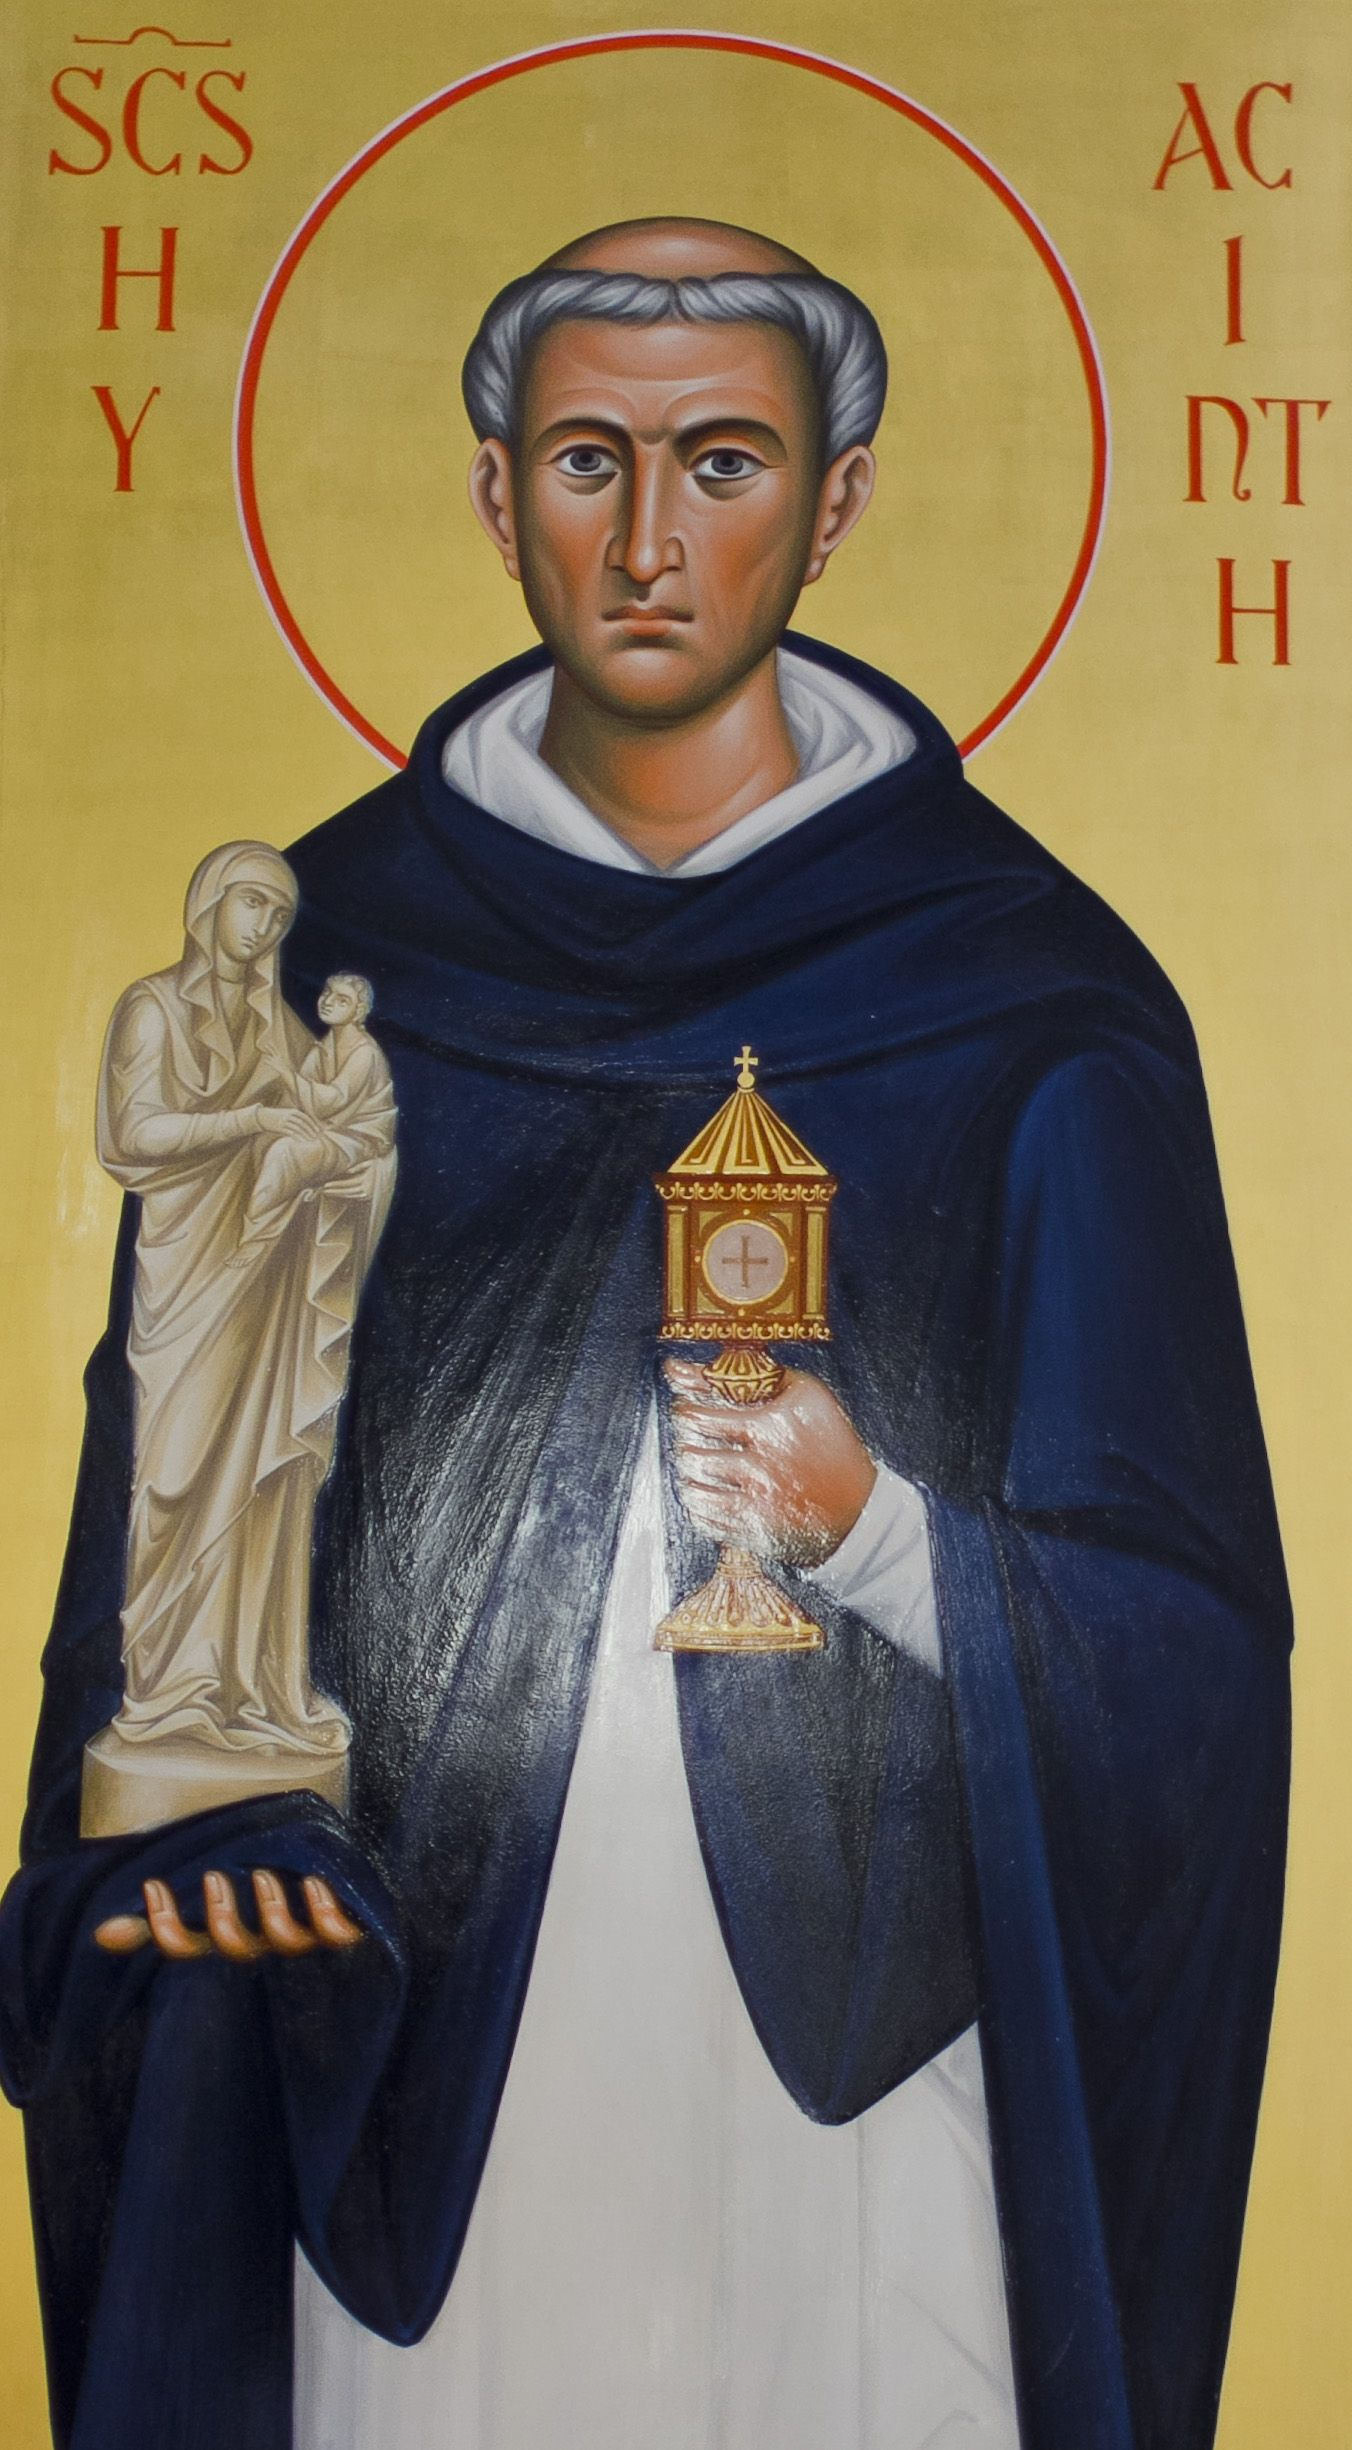 Carissimi: Today's Mass; St Hyacinth OP, Confessor